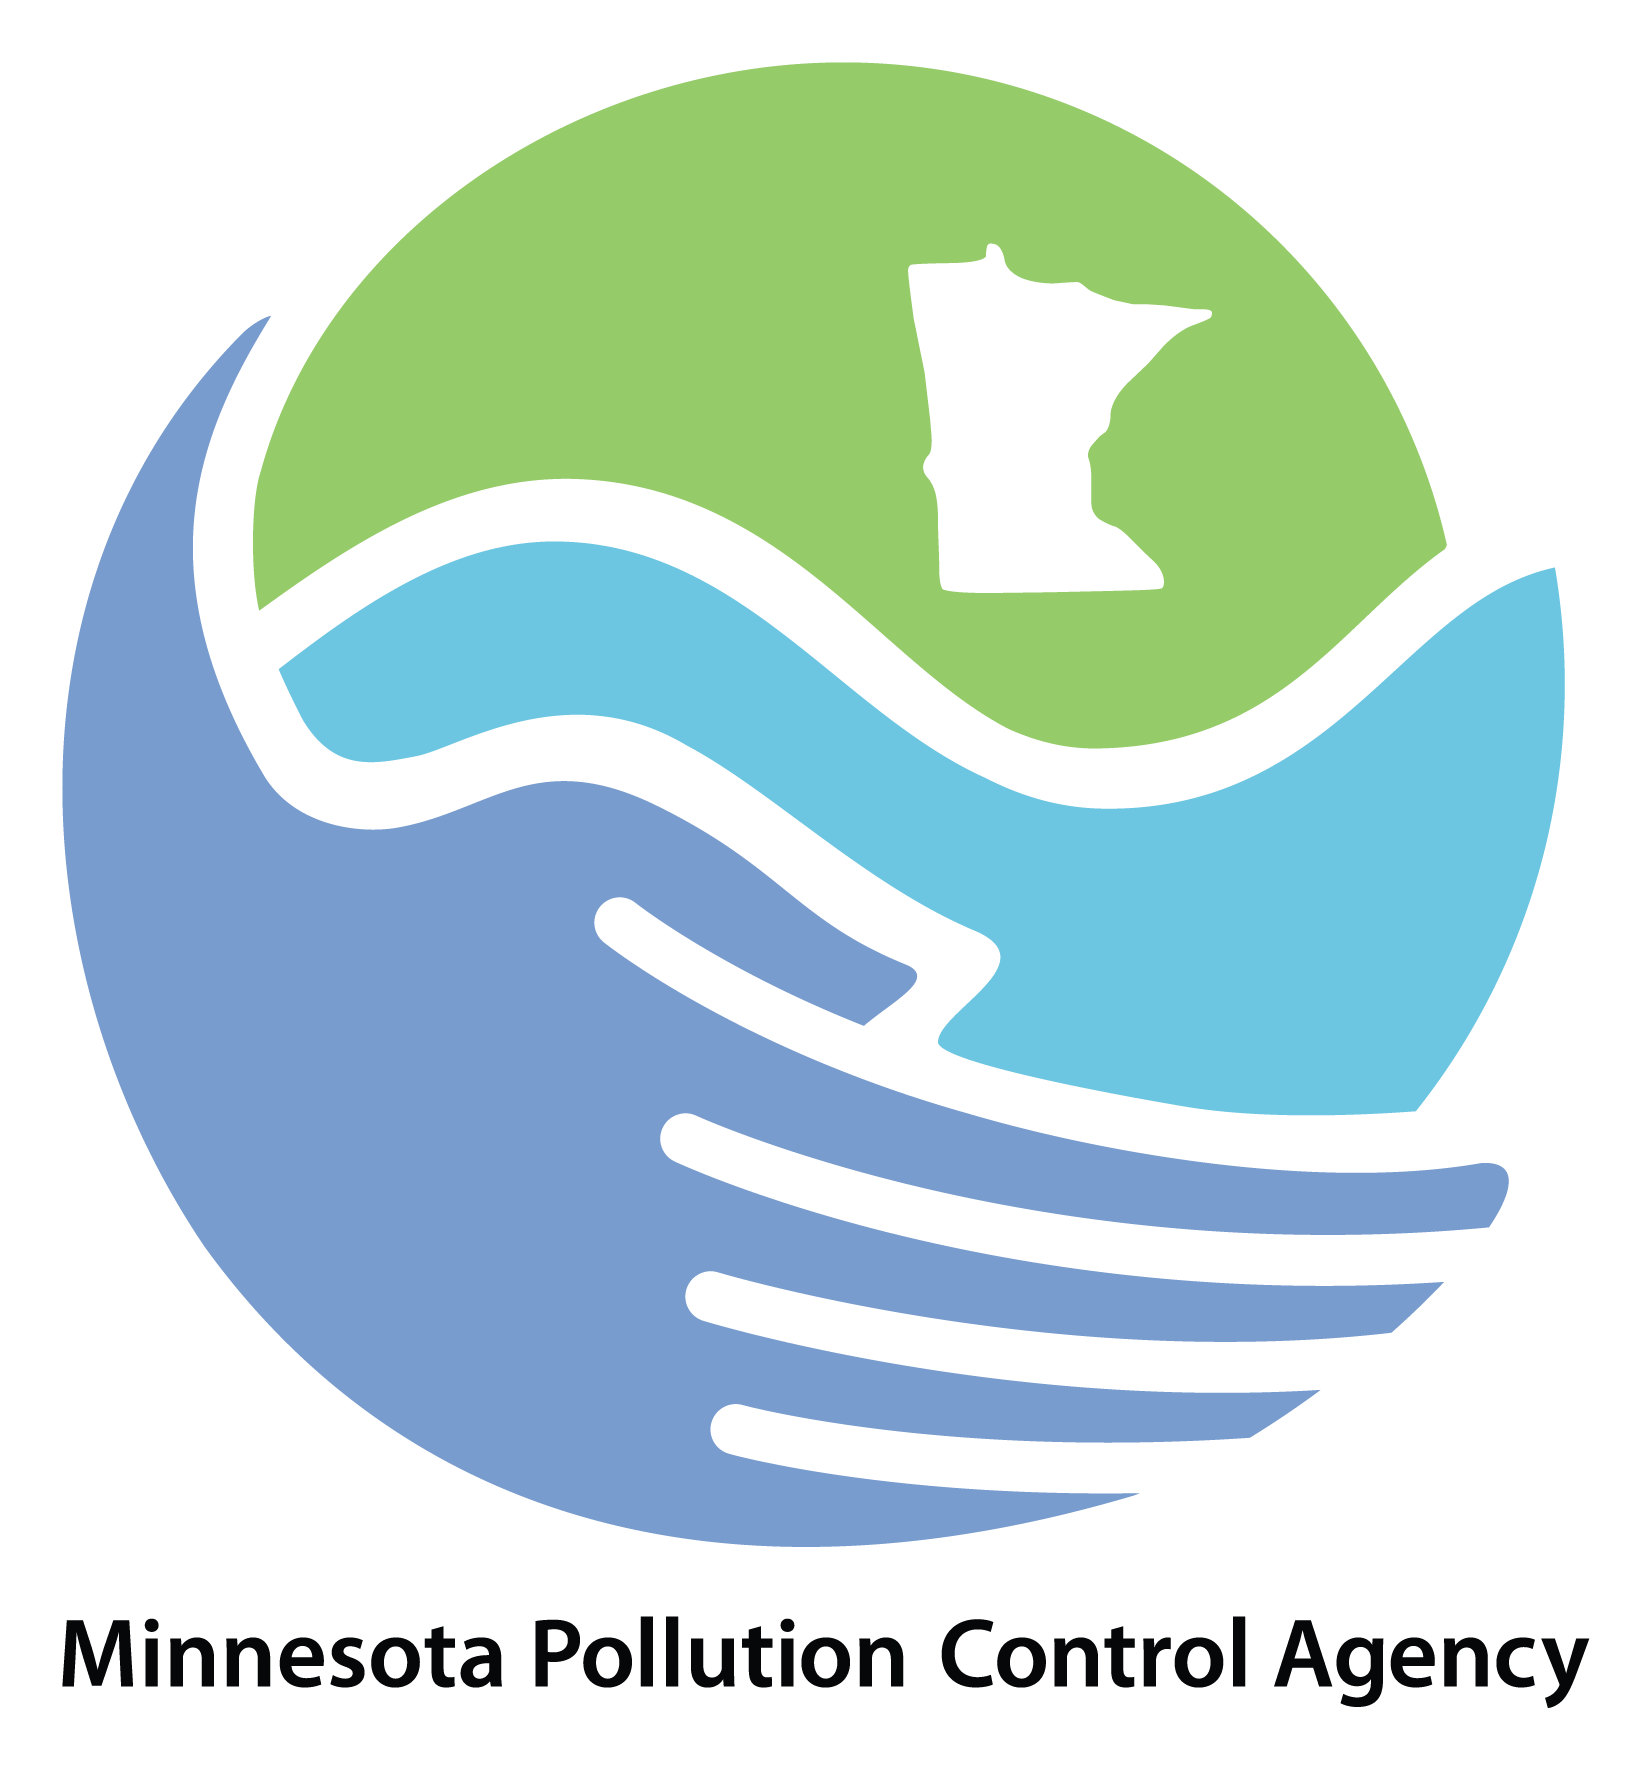 Minnesota Pollution Control Agency Logo